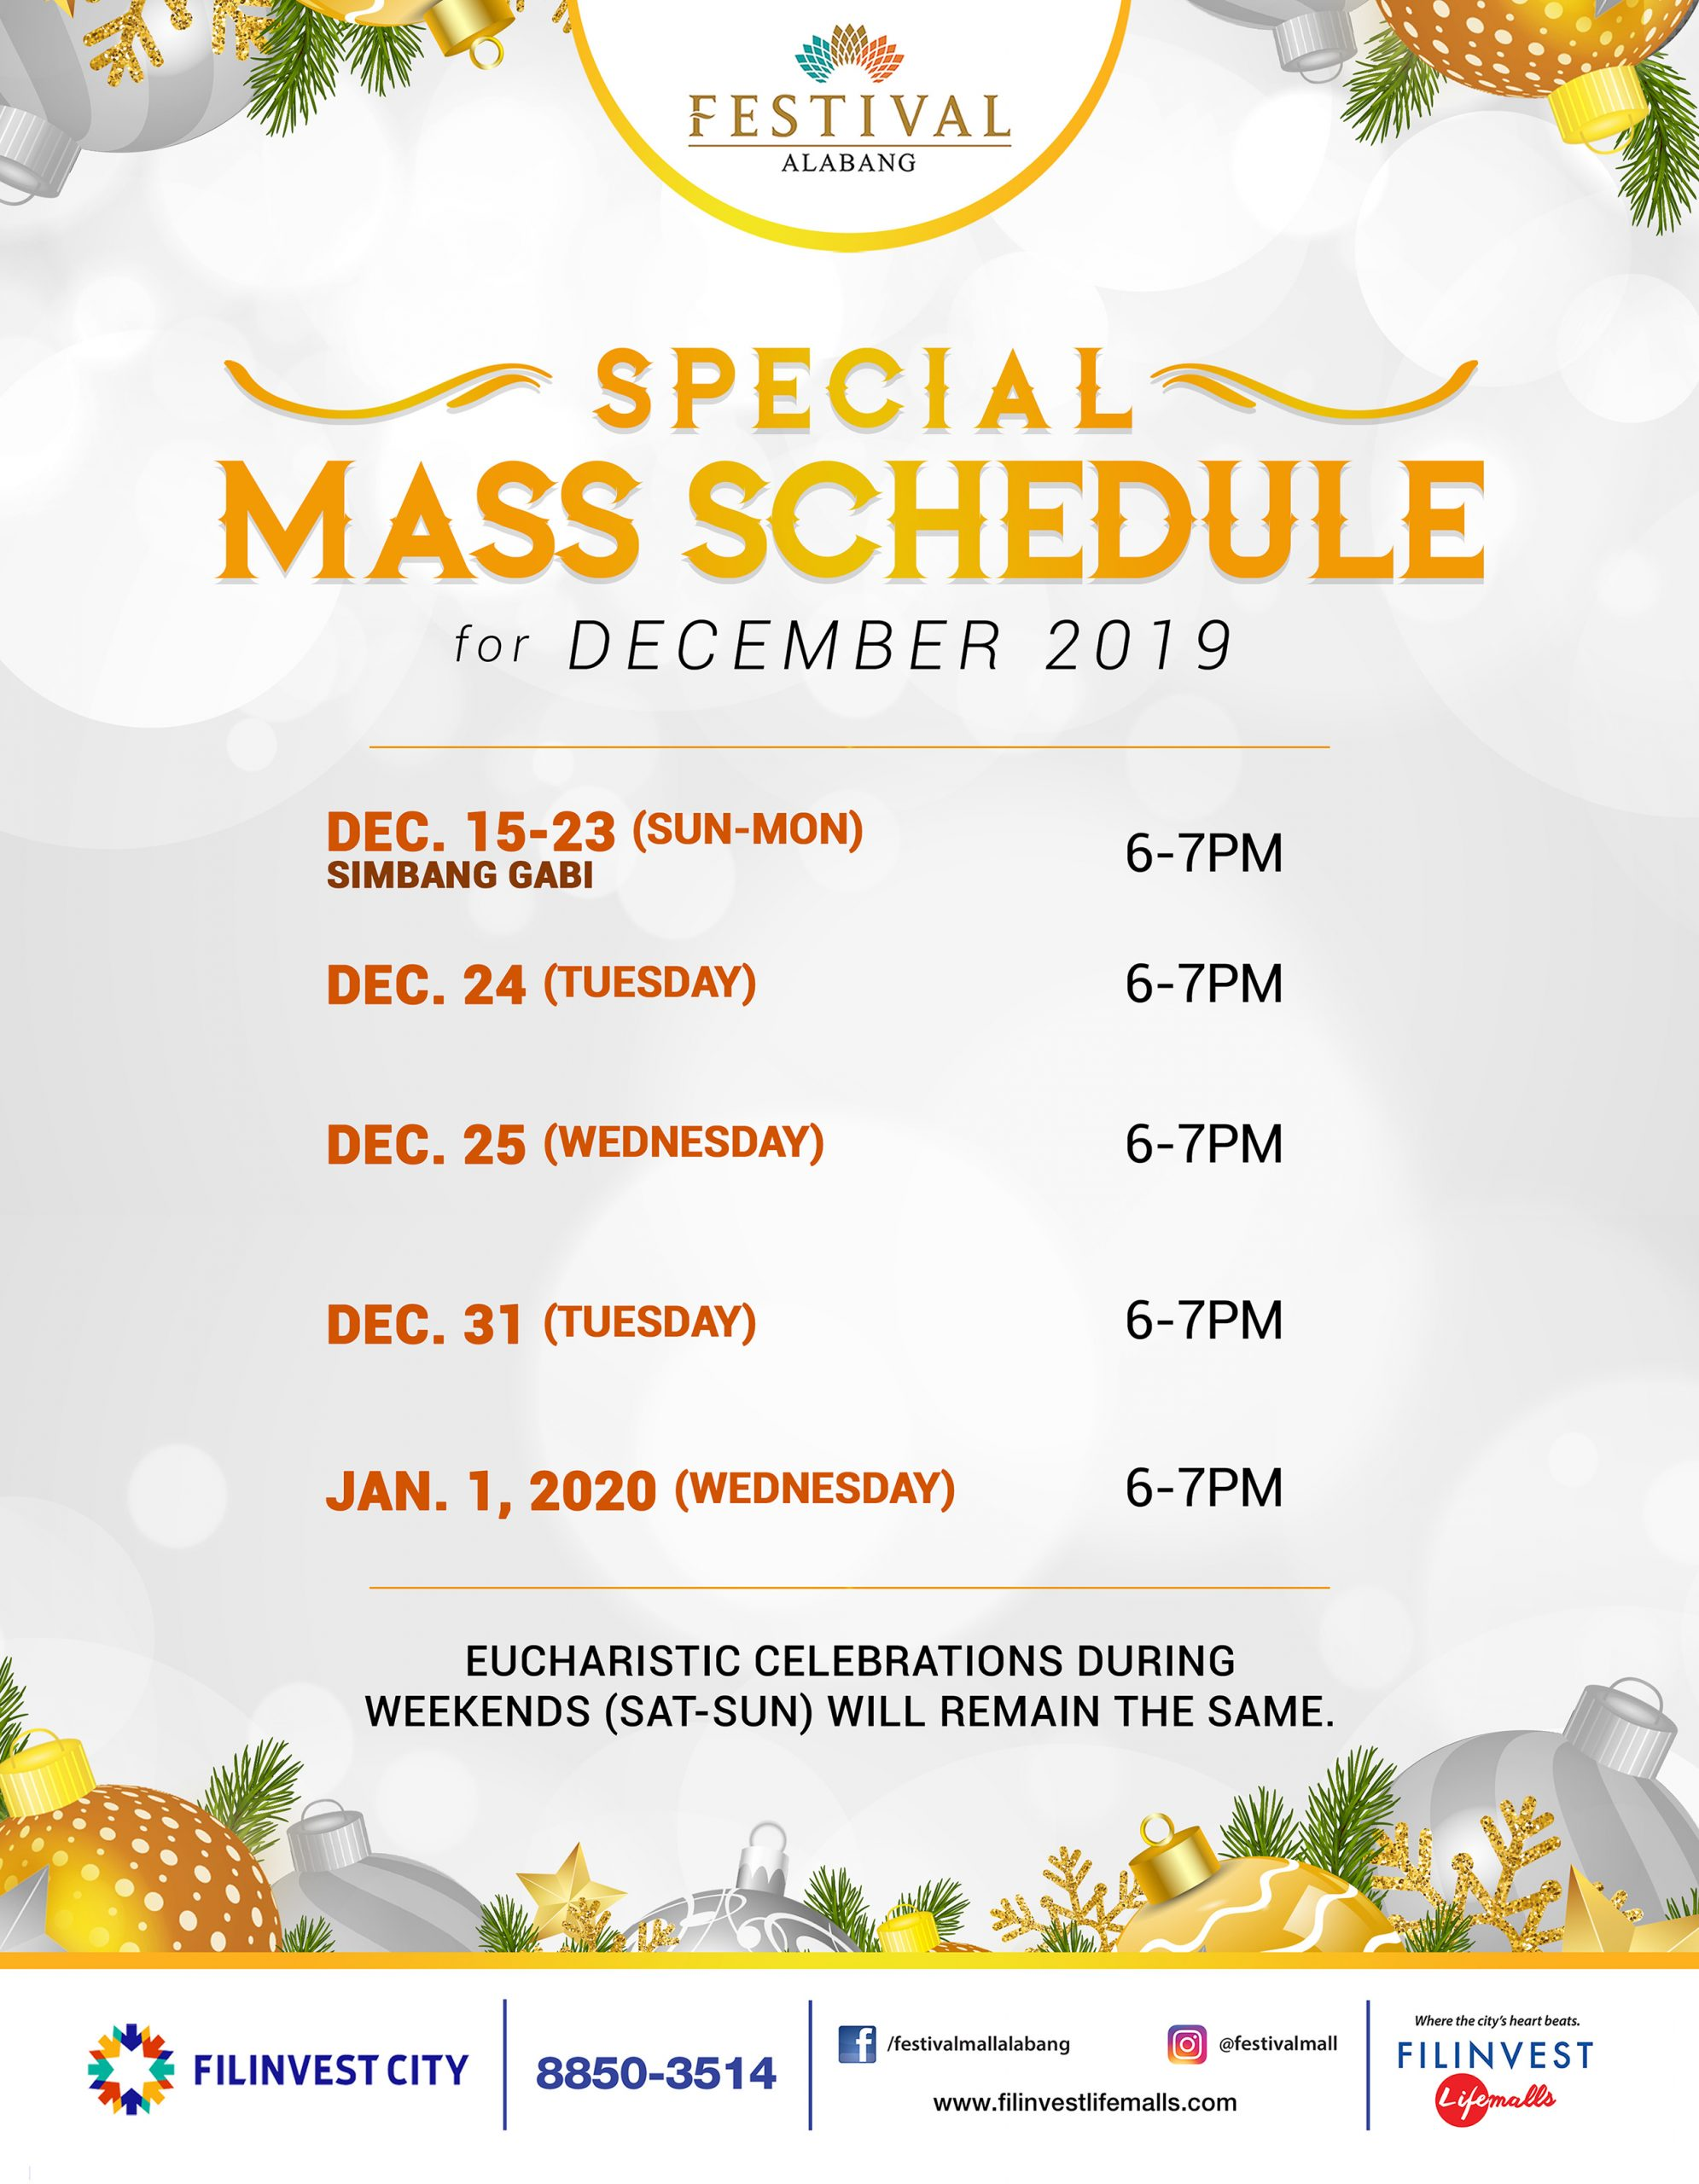 Festival Mall's Special Mass Schedule